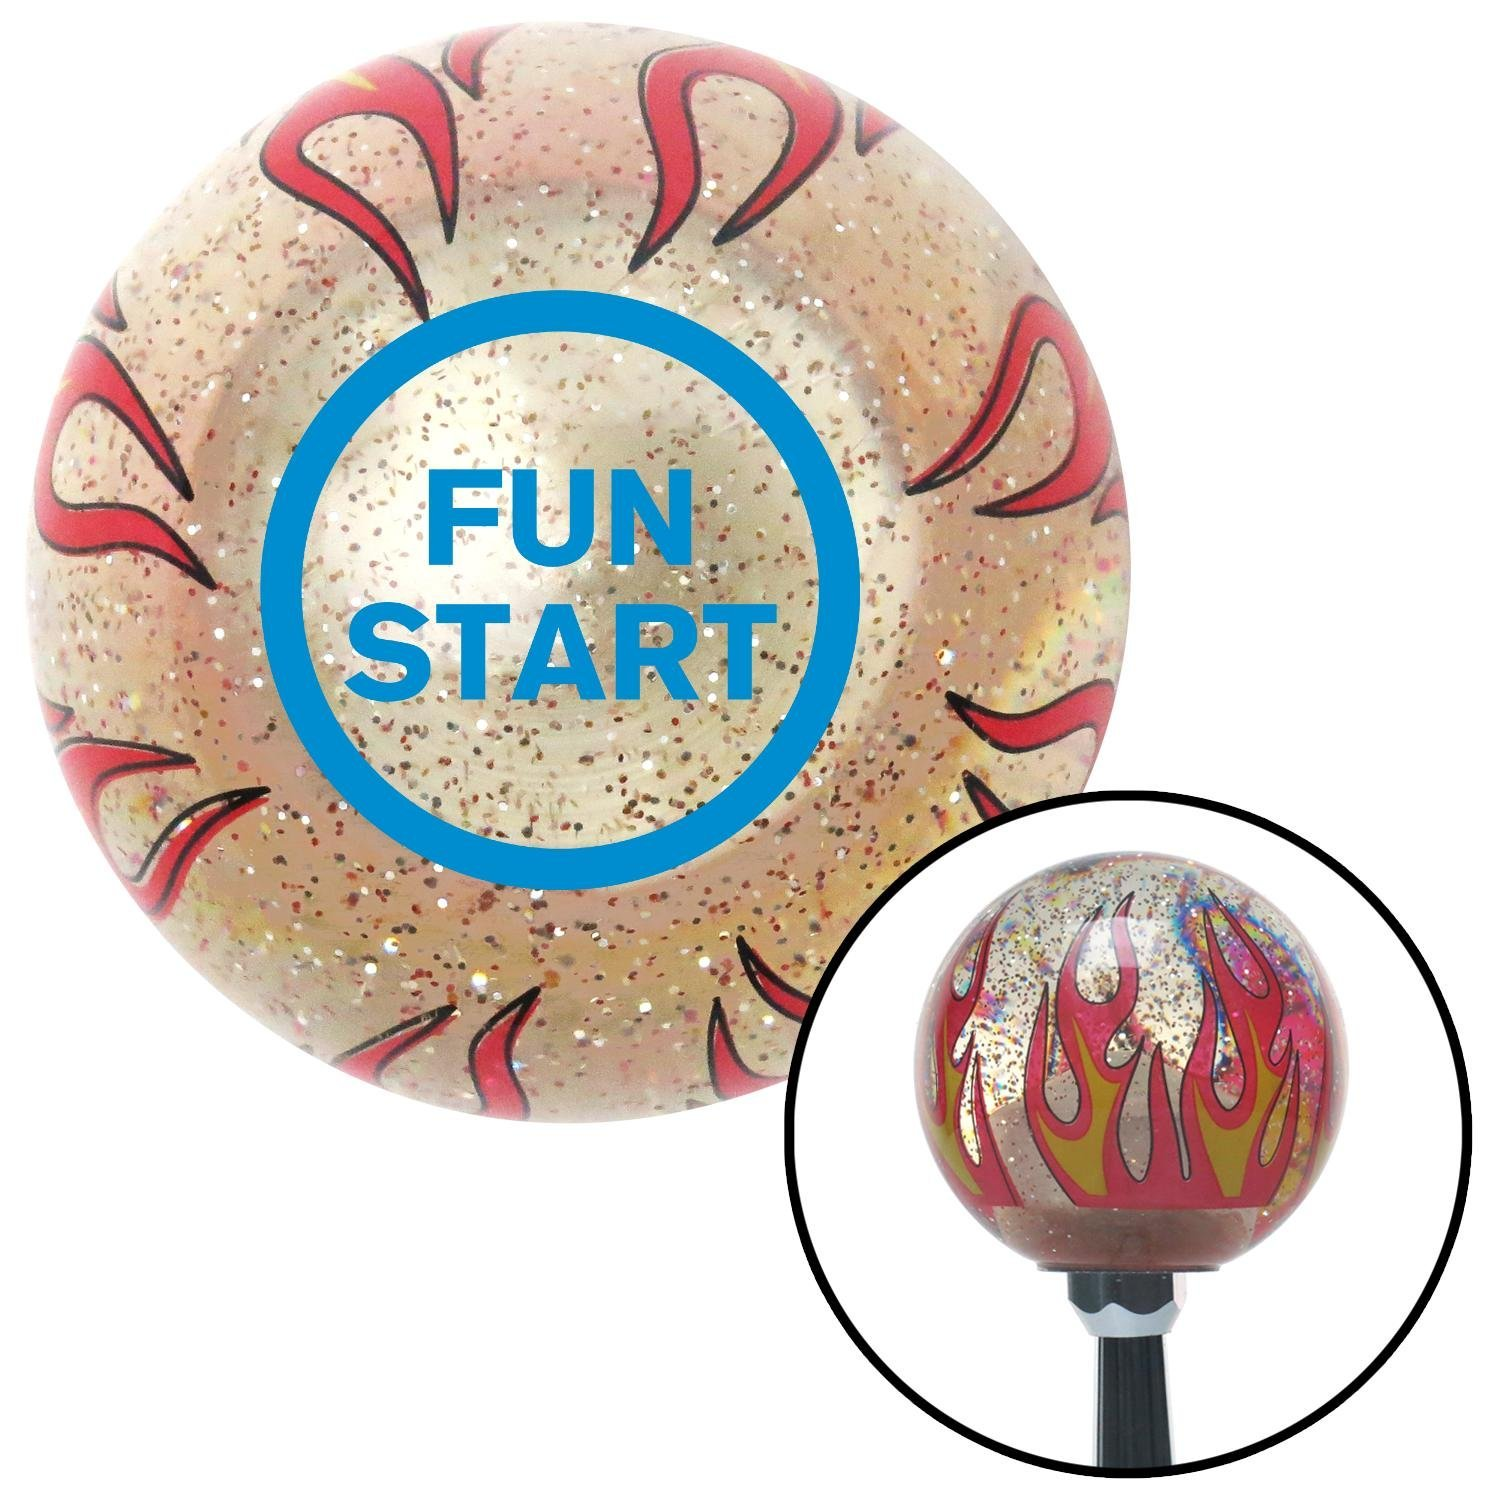 American Shifter 231721 Clear Flame Metal Flake Shift Knob with M16 x 1.5 Insert Blue Fun Start